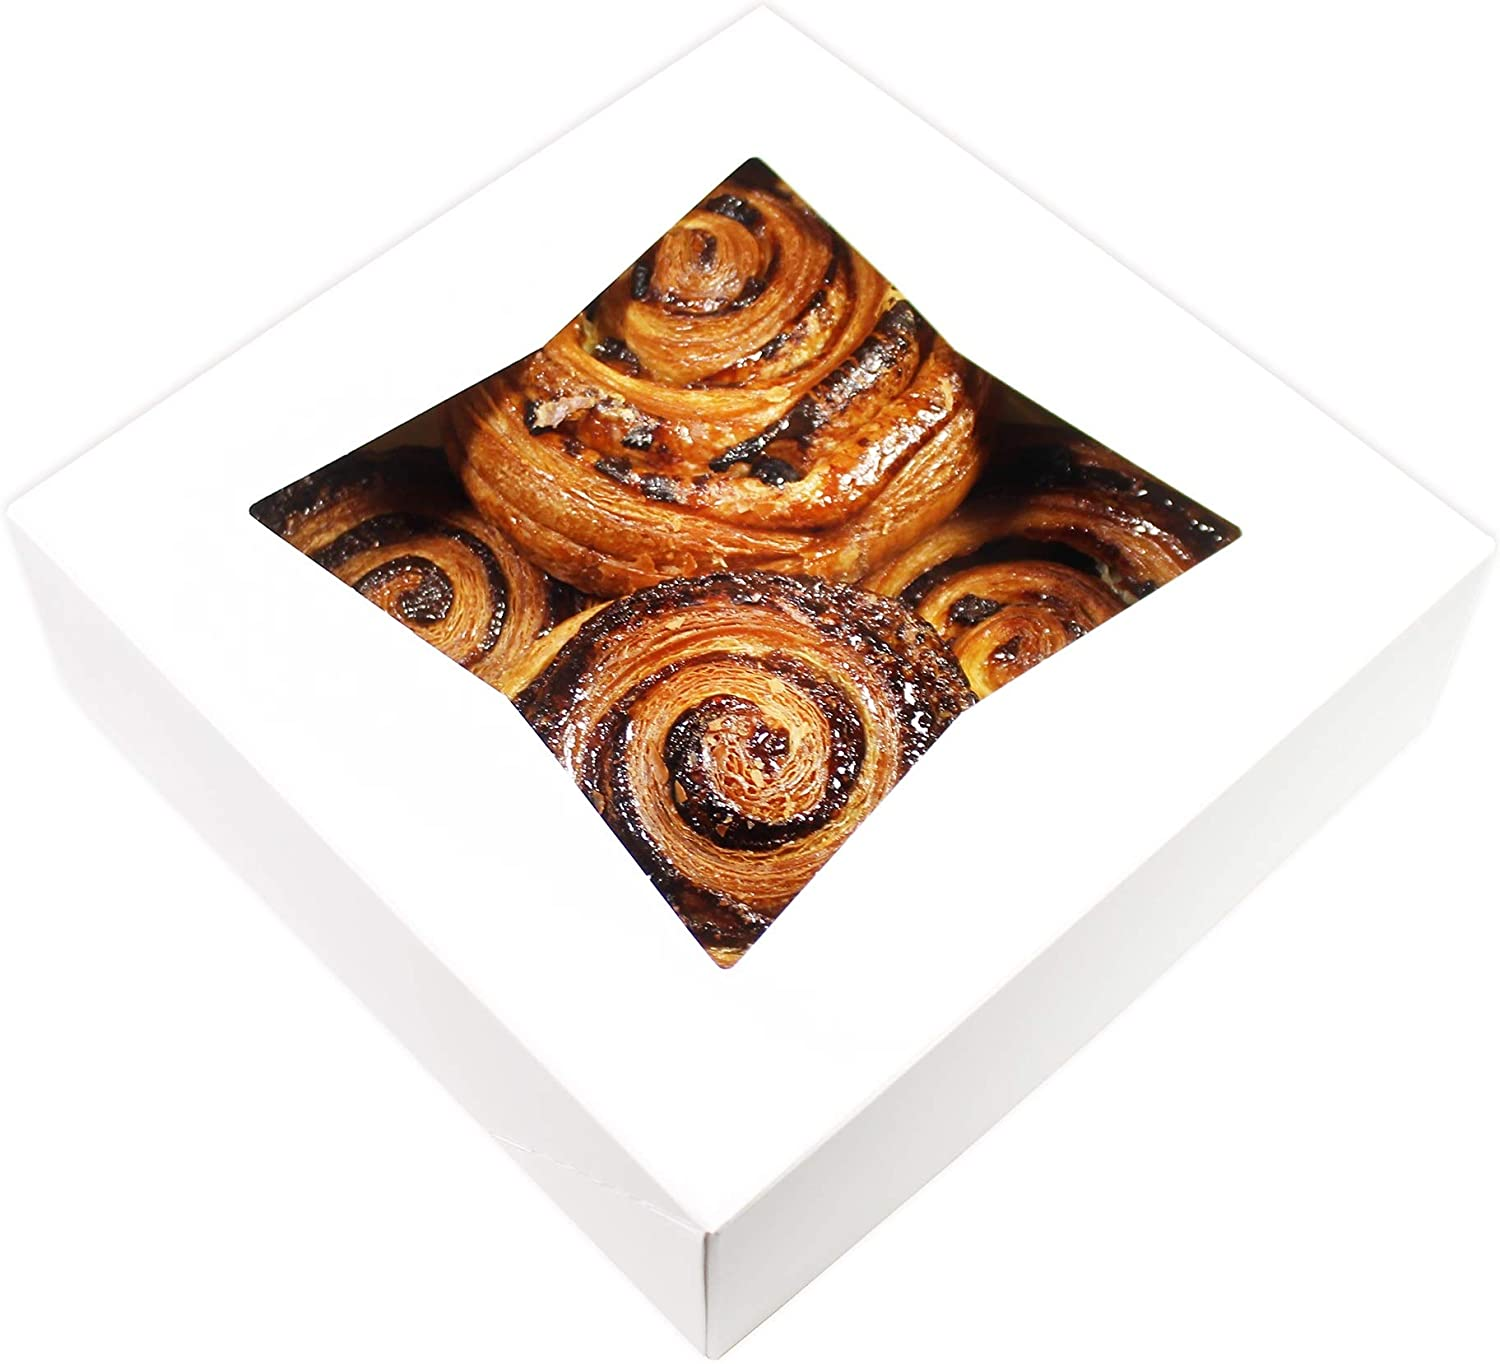 BakeLuv White Bakery Boxes with Window 8x8x2.5 inches | 25 Pack | Auto-Popup | Thick & Sturdy 350 GSM | Cookie Boxes with Window Bakery Boxes for Cookies, Cake Boxes, Donut Boxes, Pastry Boxes